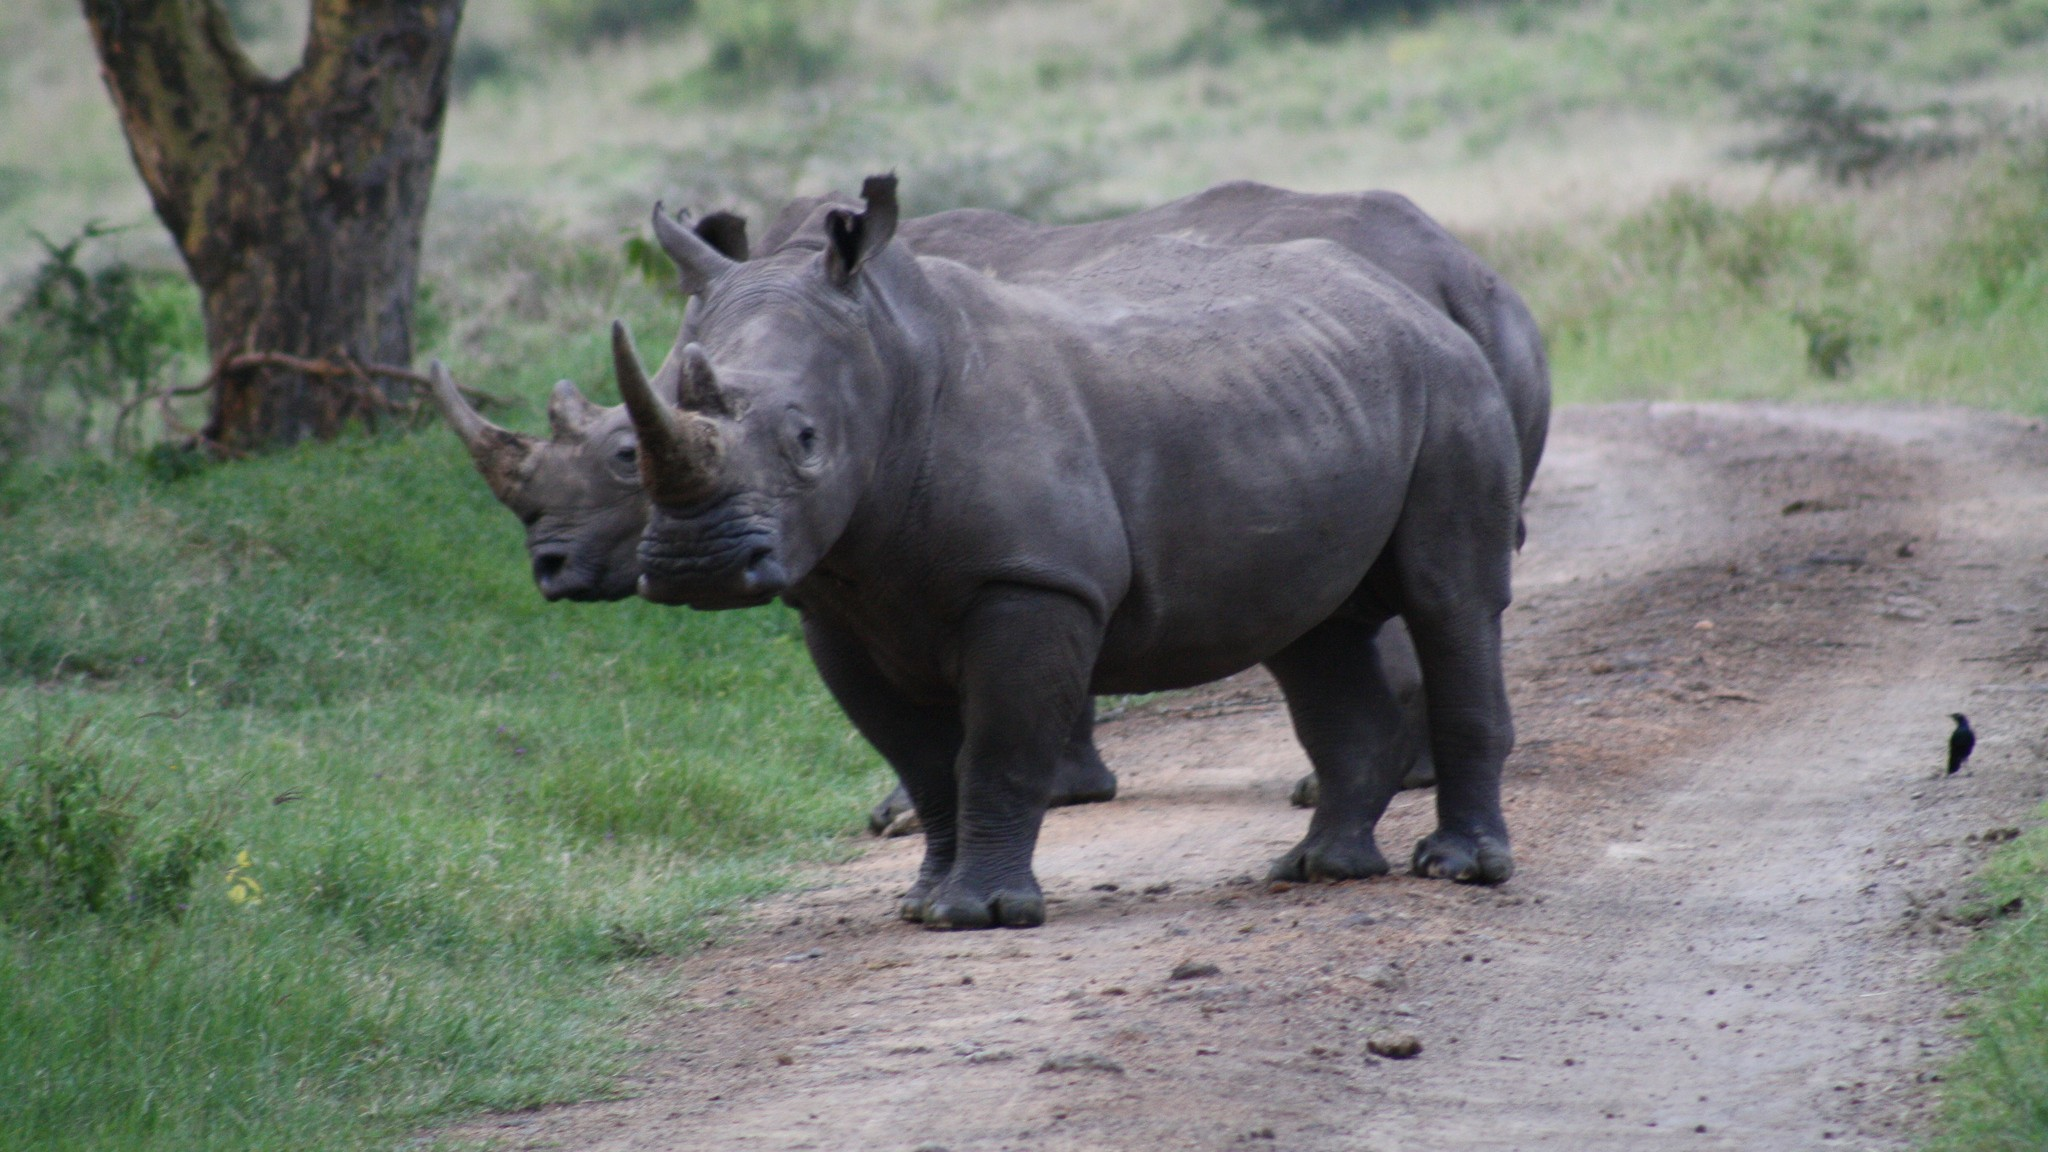 Rhino Horn Cams? If Only Stopping Poachers Were That Easy